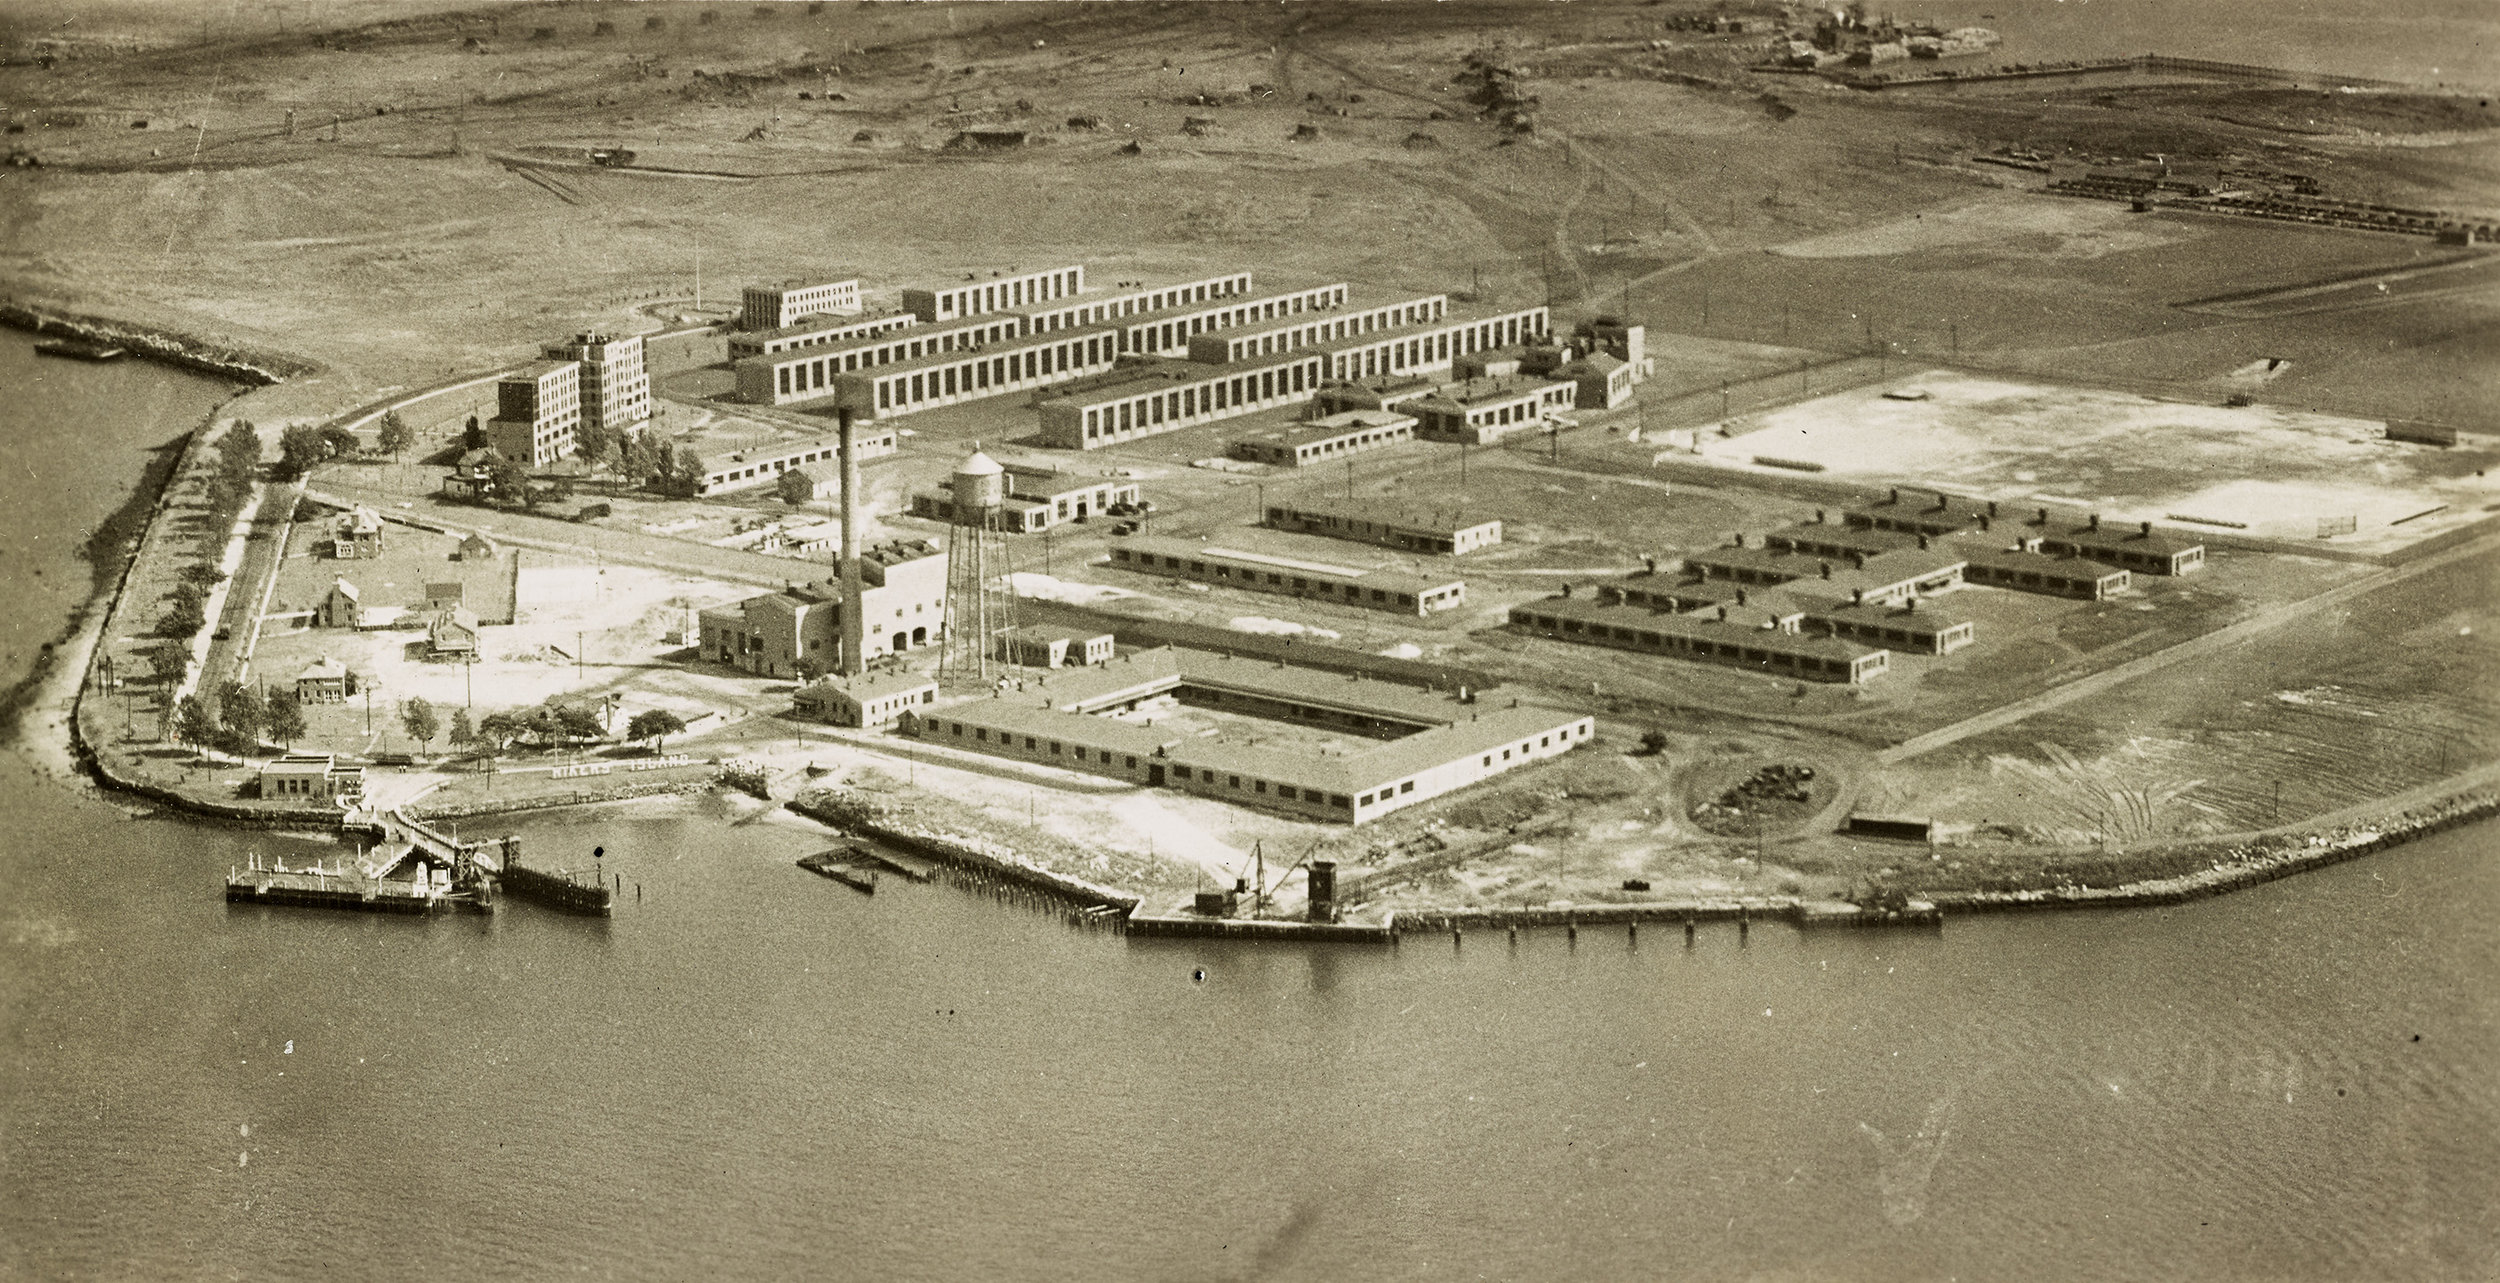 MAC_1935: Aerial view of unfinished Rikers Island penitentiary buildings, ca. 1936. Department of Corrections, NYC Municipal Archives Collection.